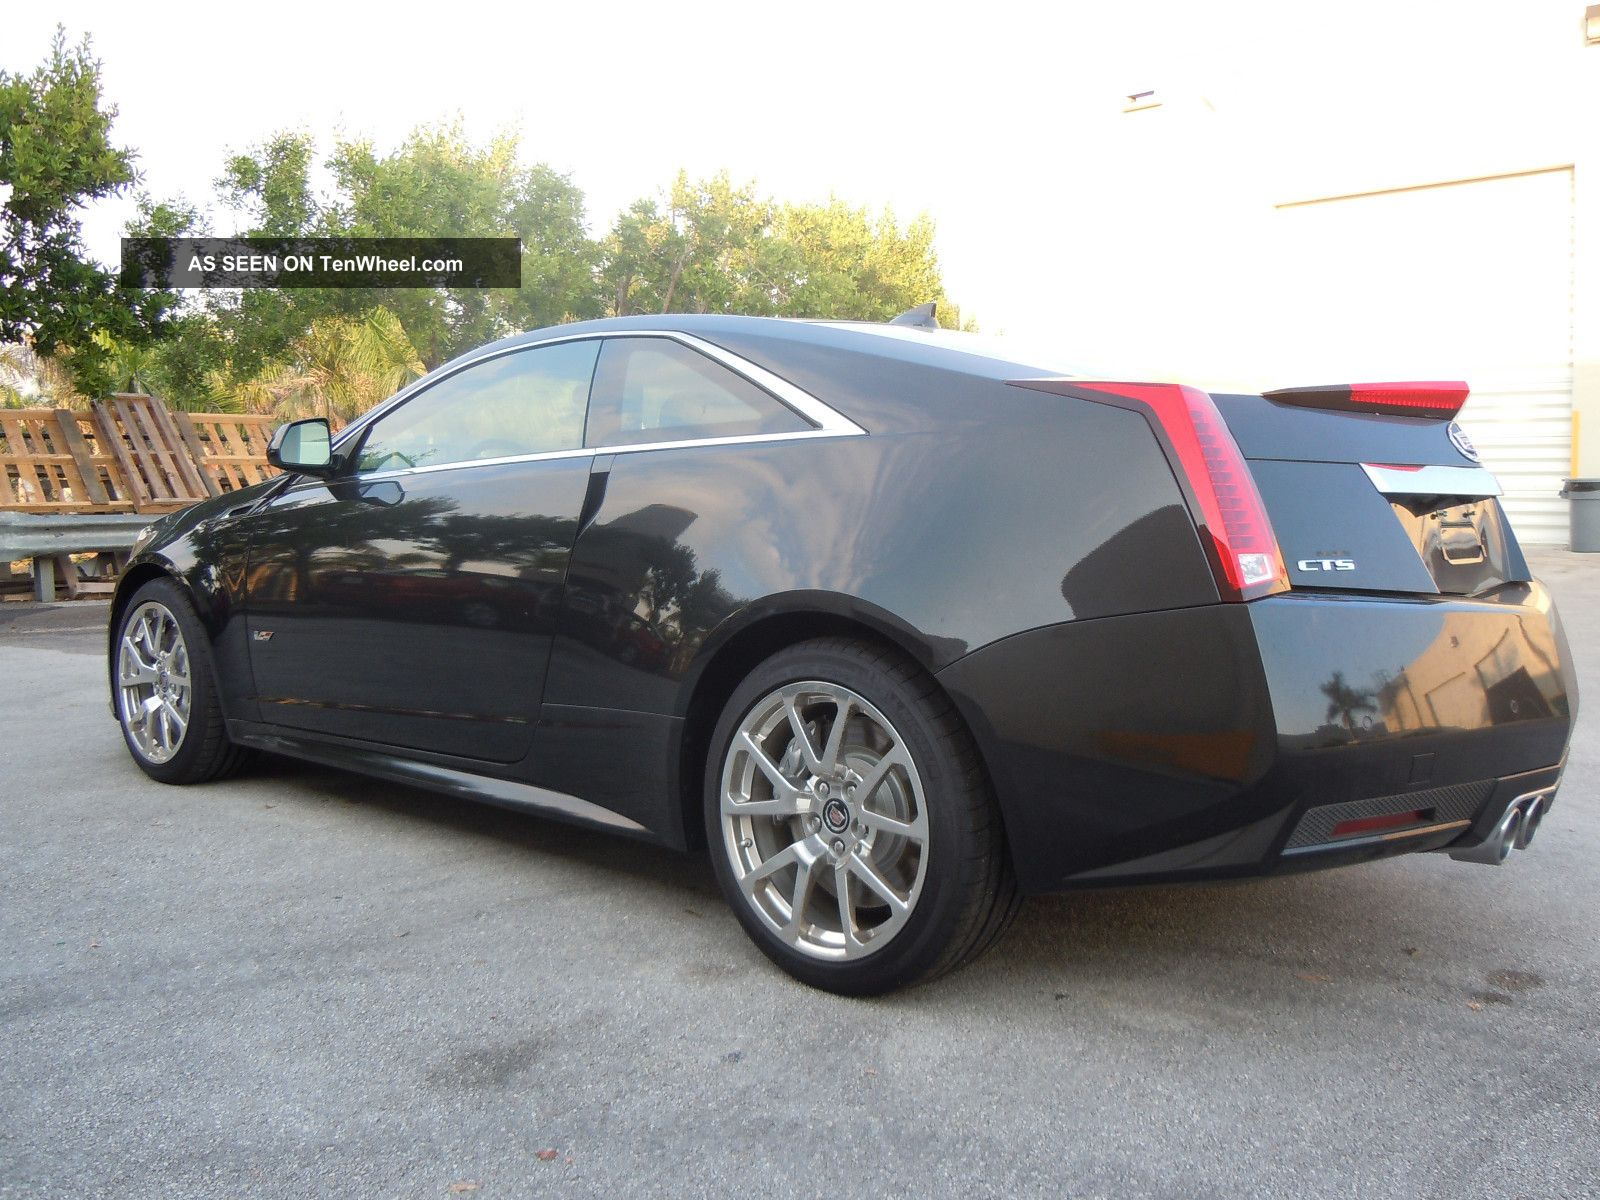 cadillac cts coupe 2012 wallpaper #13